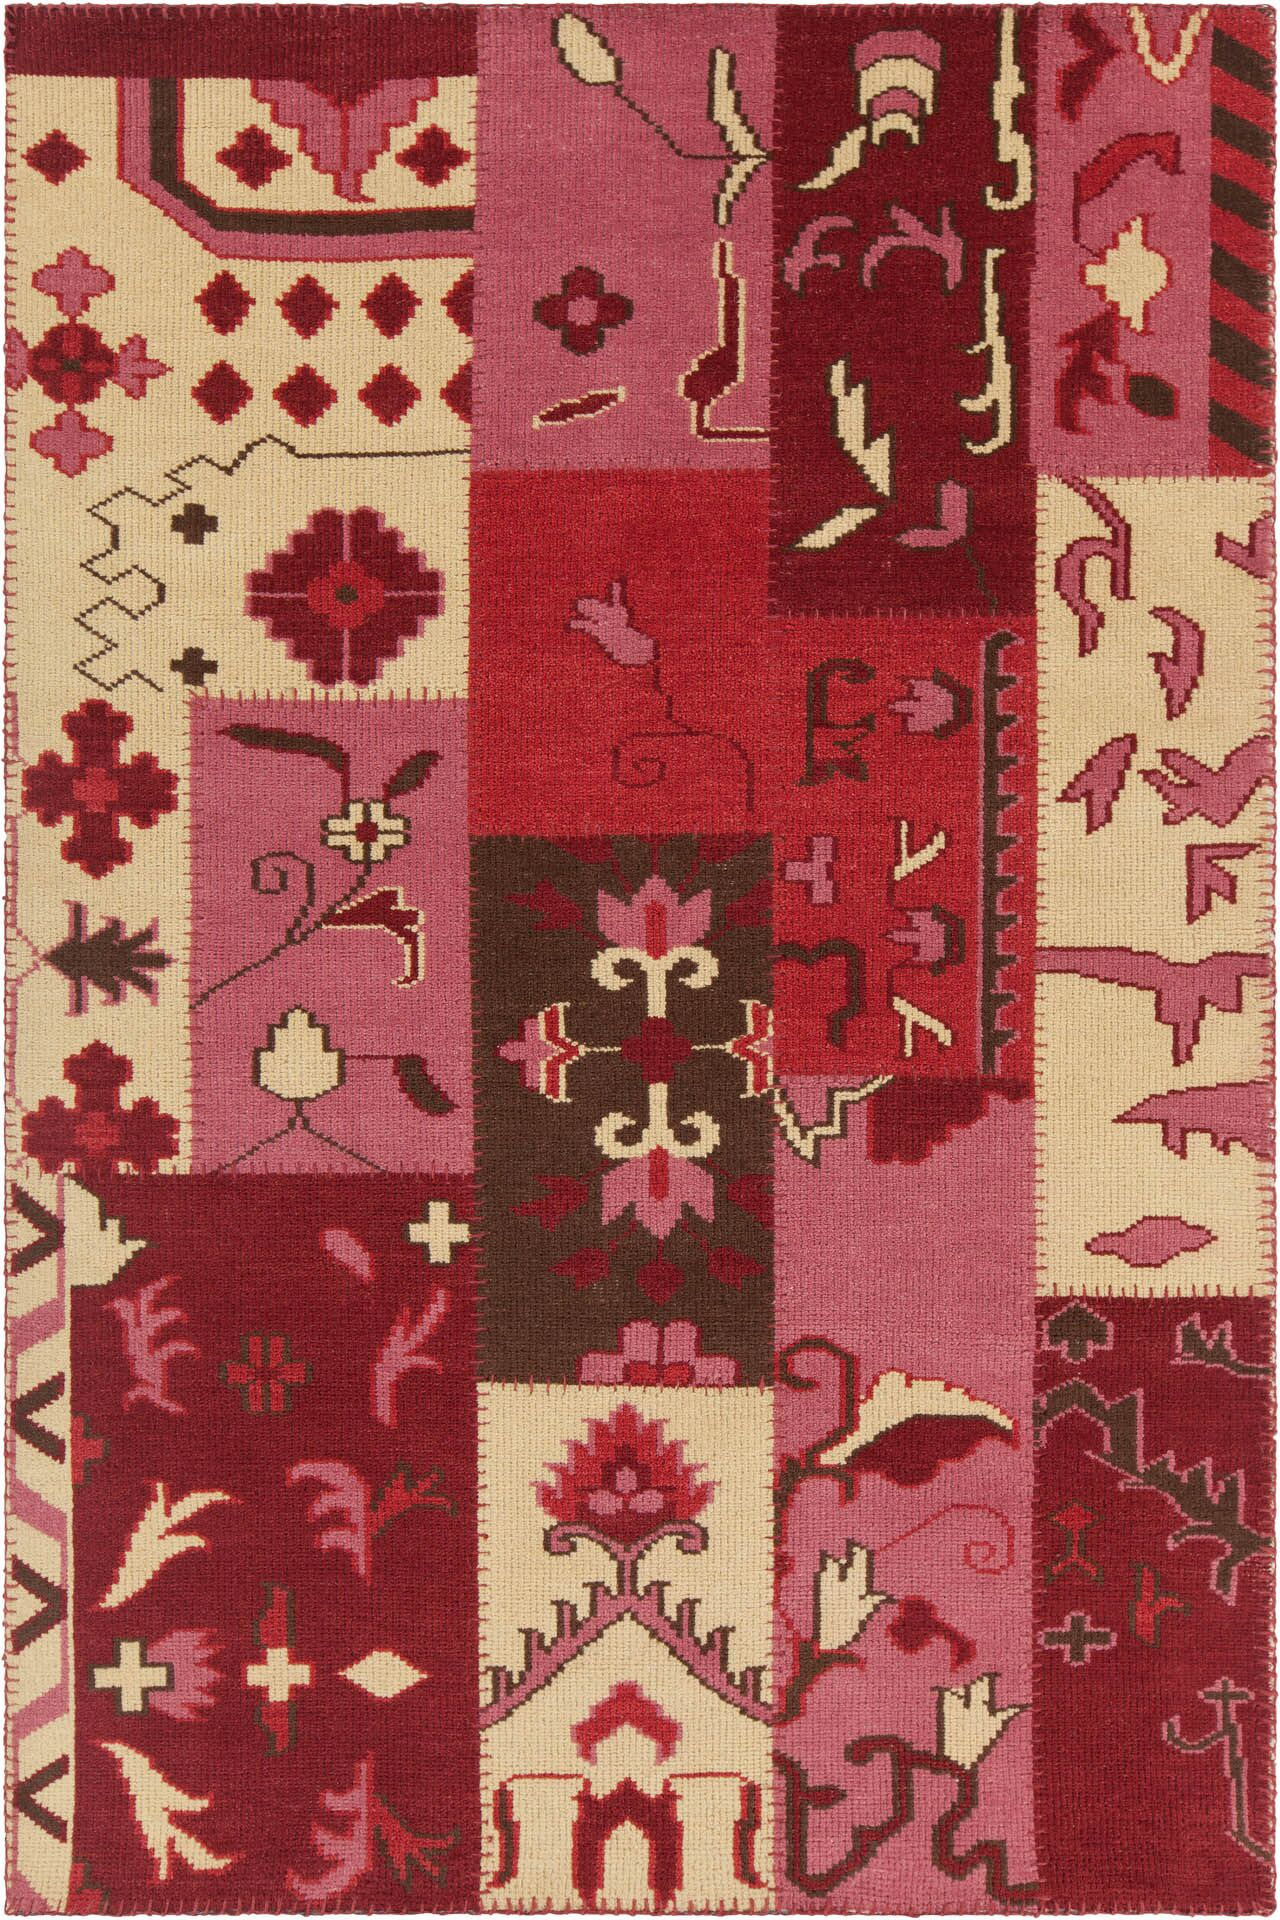 Casselman Patterned Contemporary Pink/Red Area Rug Rug Size: 7'9